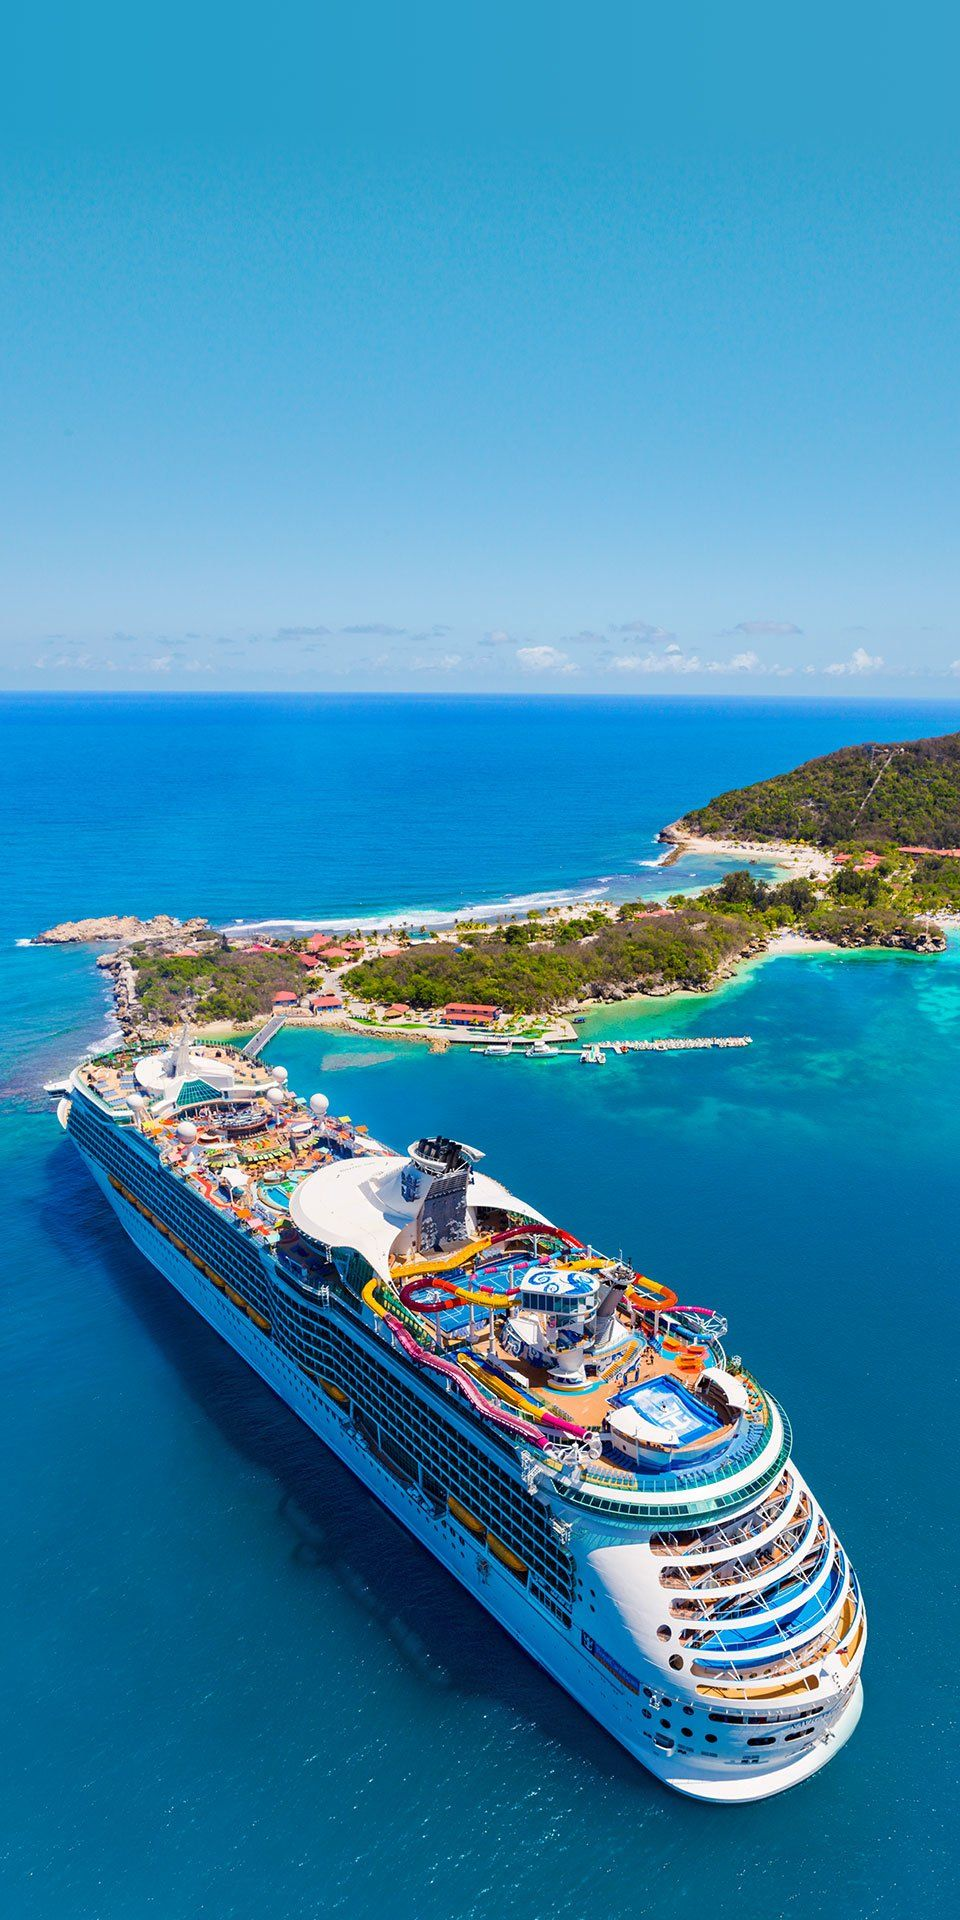 Navigator Of The Seas This Is Your Short Vacay Turned Way Way Up Only On Royal Caribbean Navigator Of The Seas Biggest Cruise Ship Cruise Ship